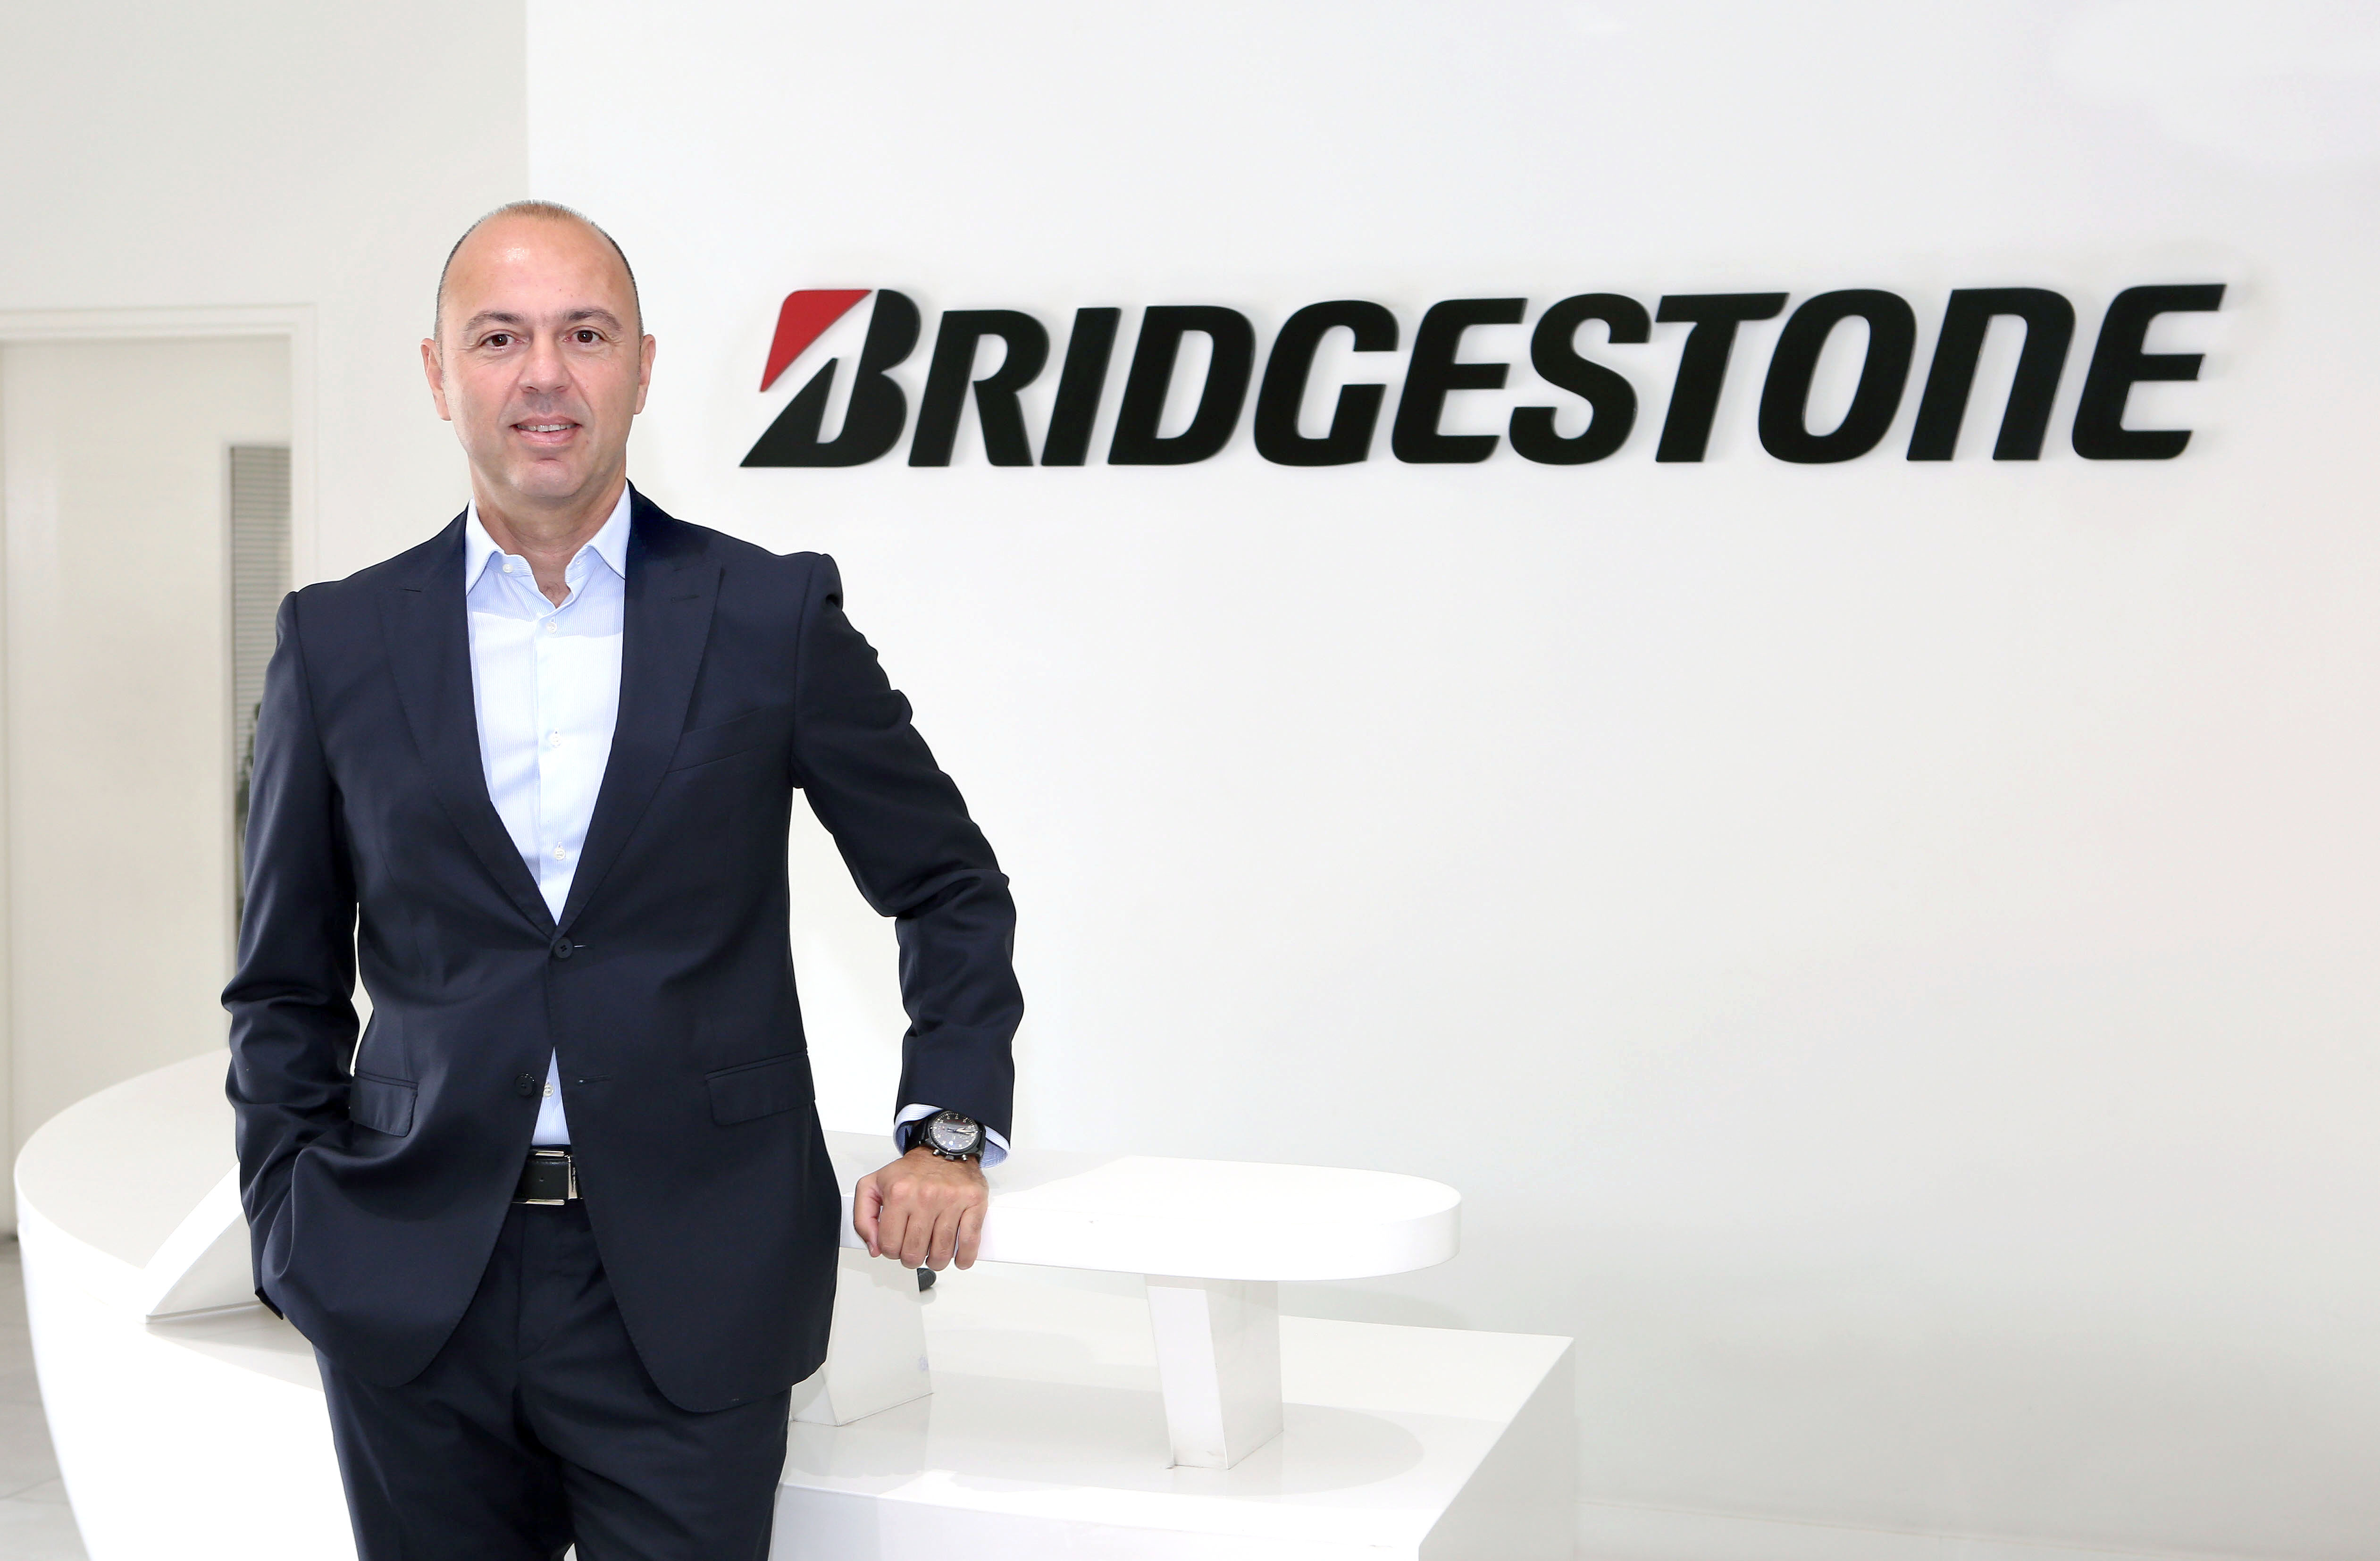 Bridgestone EMEA Appoints Mete Ekin to Lead Bridgestone's Emerging Market Business